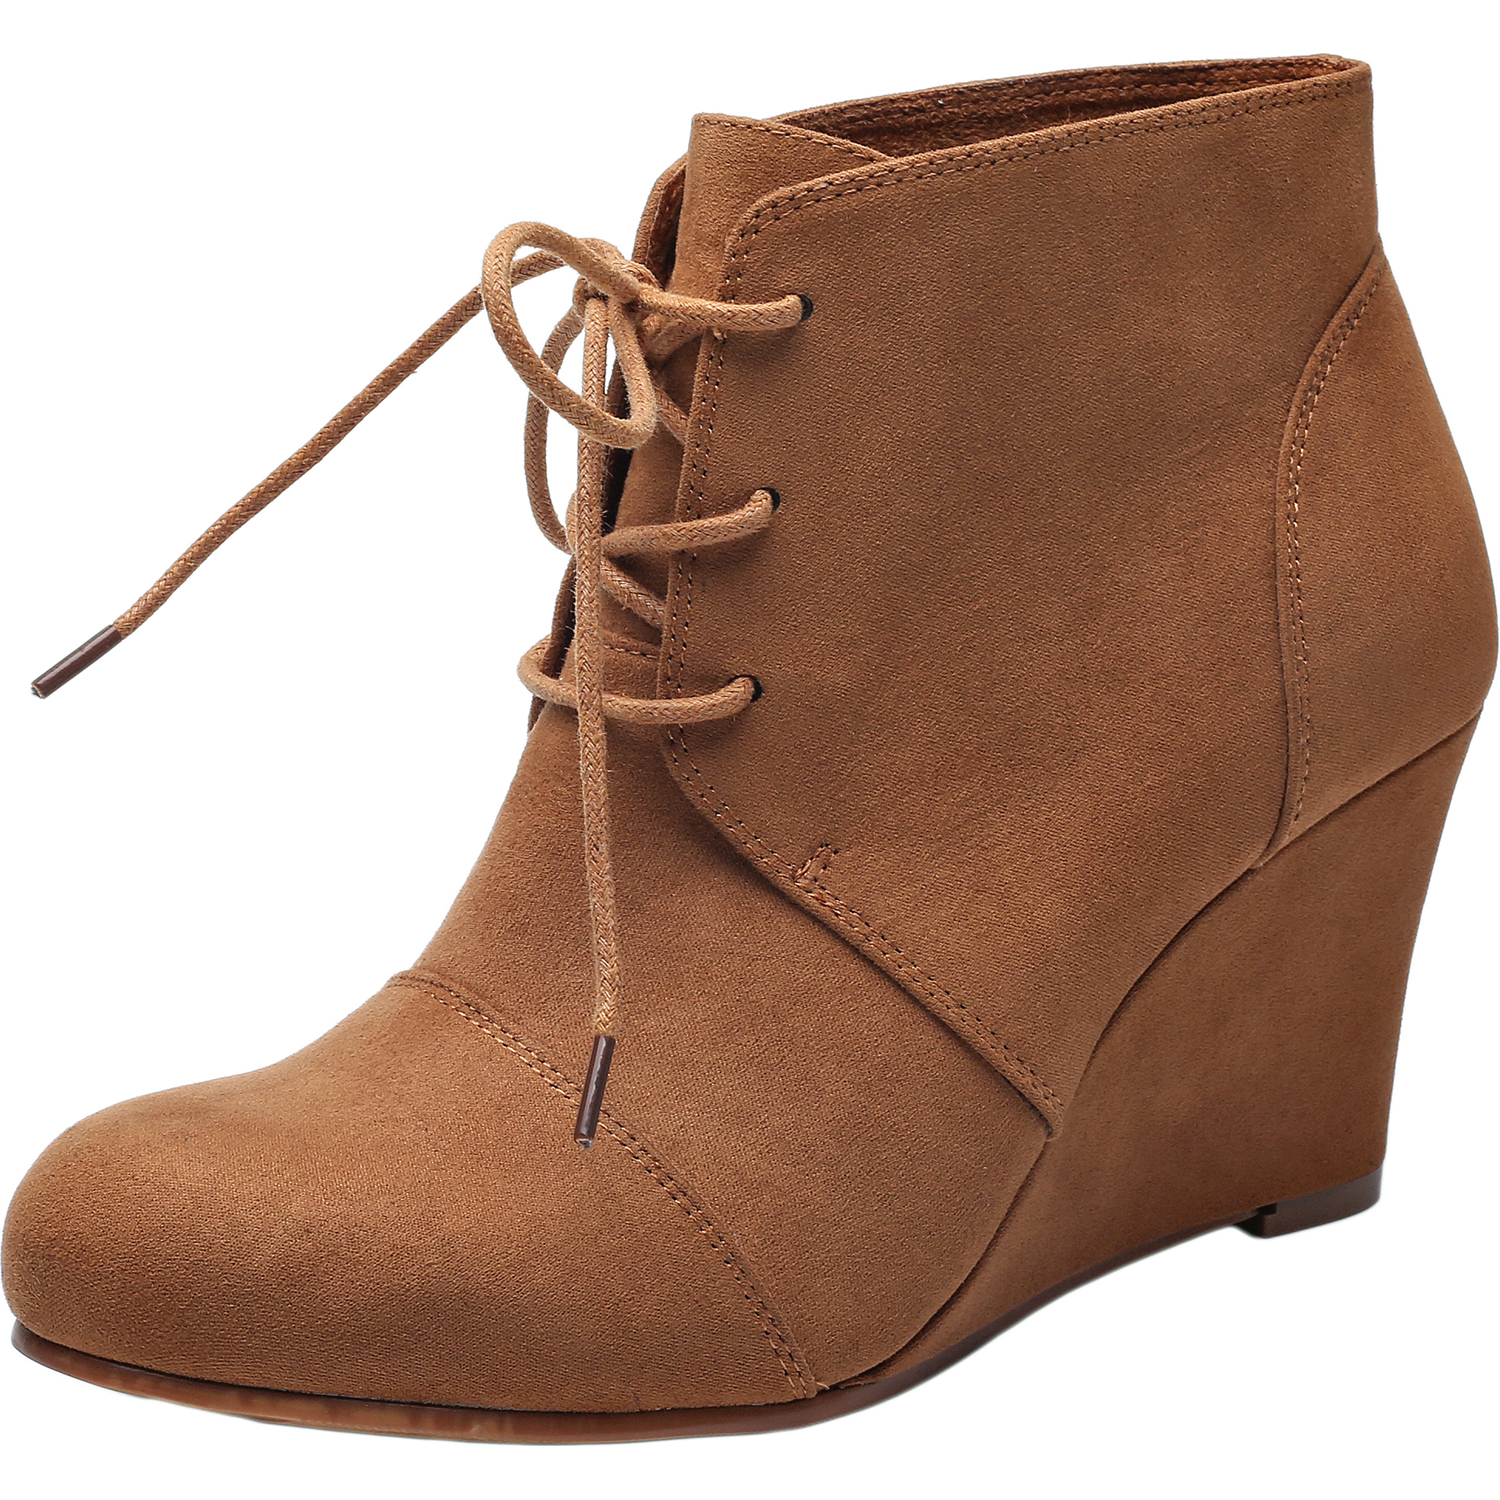 3c14e1706a43 US  45.99 - Women s Wide Width Wedge Boots - Lace Up Low Heeled Ankle  Booties w Round Closed Toe Rubber Sole Memory Foam Insole. -  www.luoika-us.com